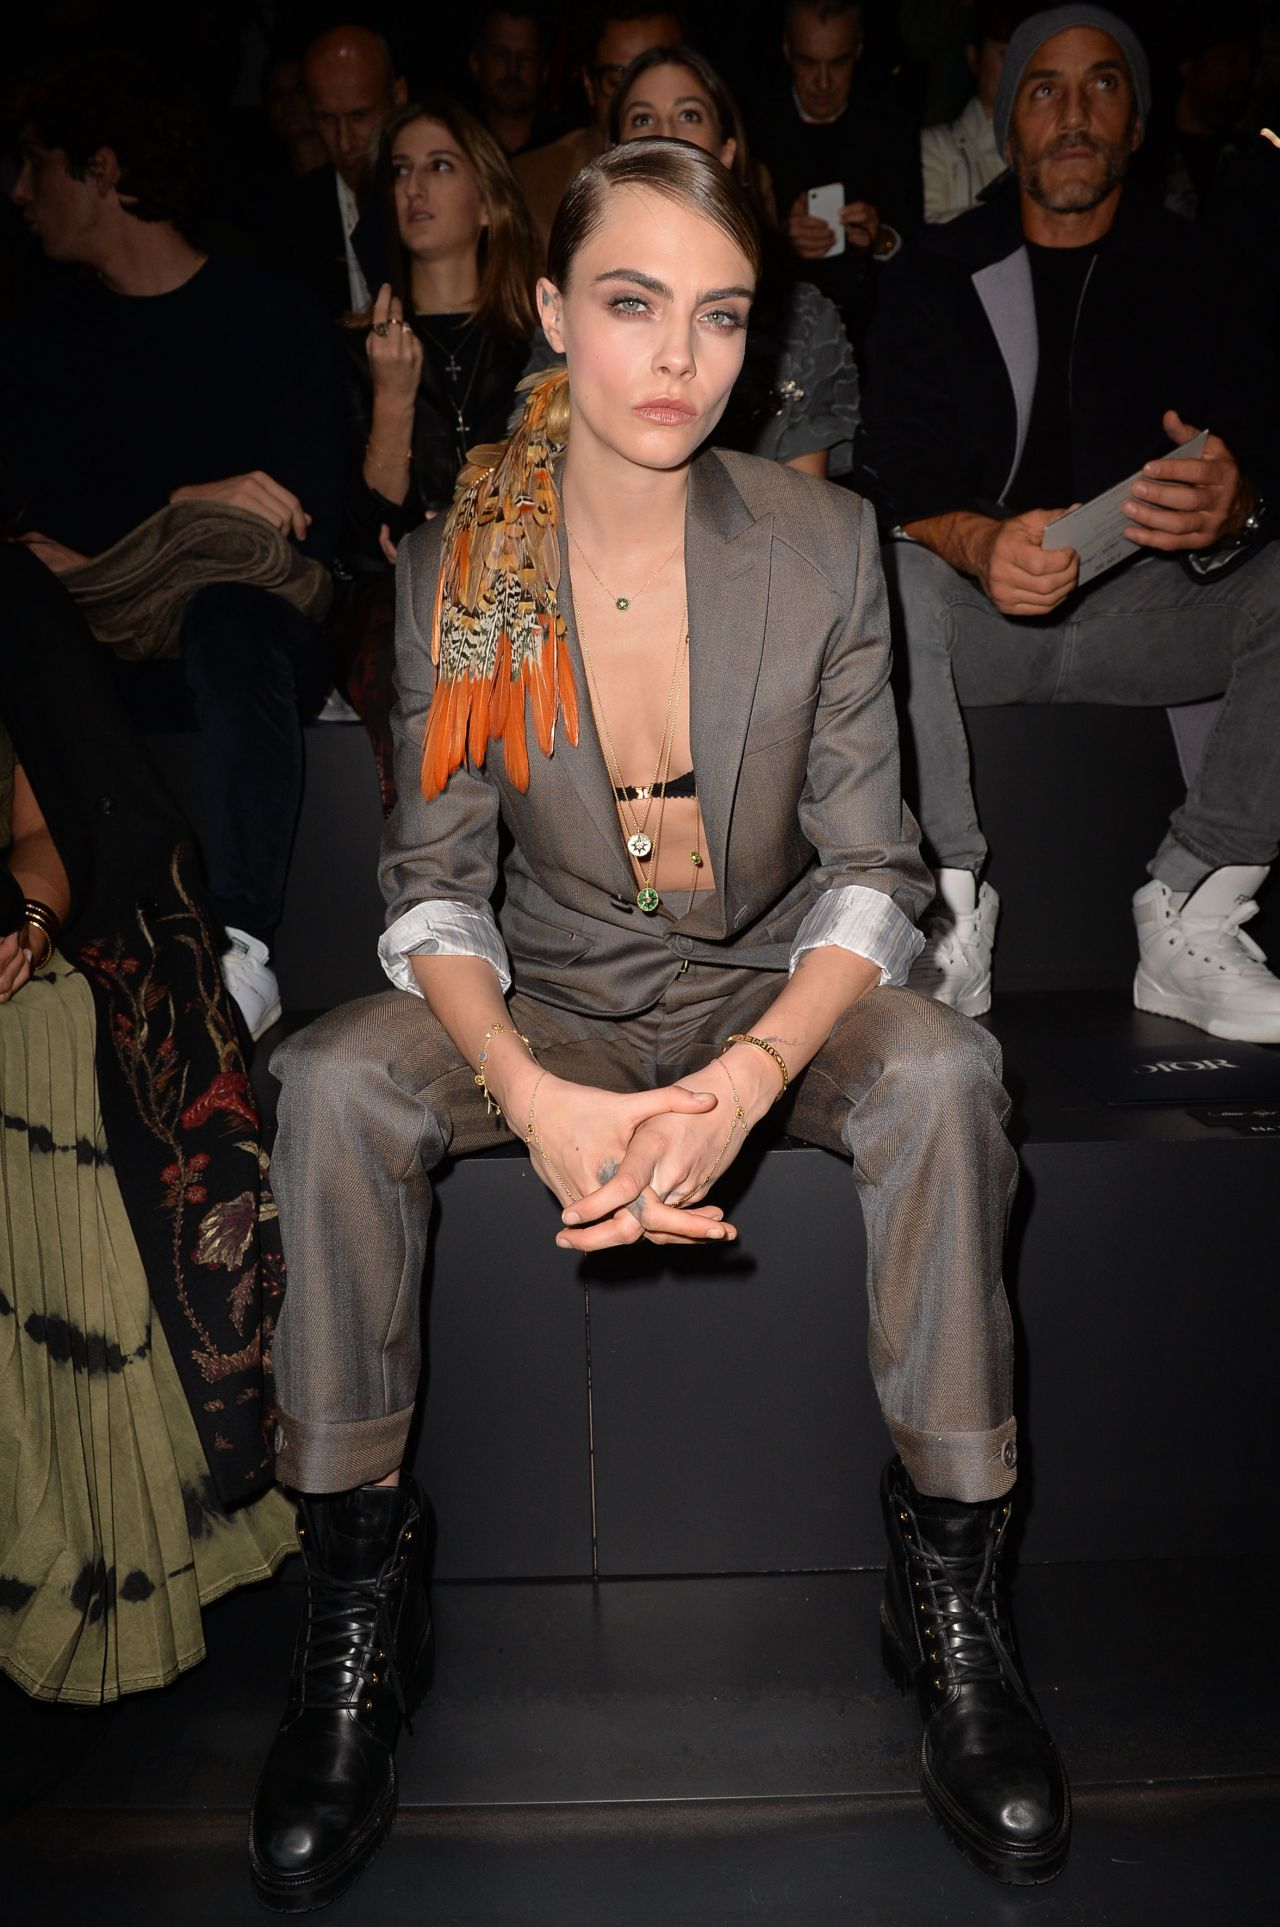 cara-delevingne-front-row-dior-homme-menswear-fall-winter-2020-2021-show-in-paris